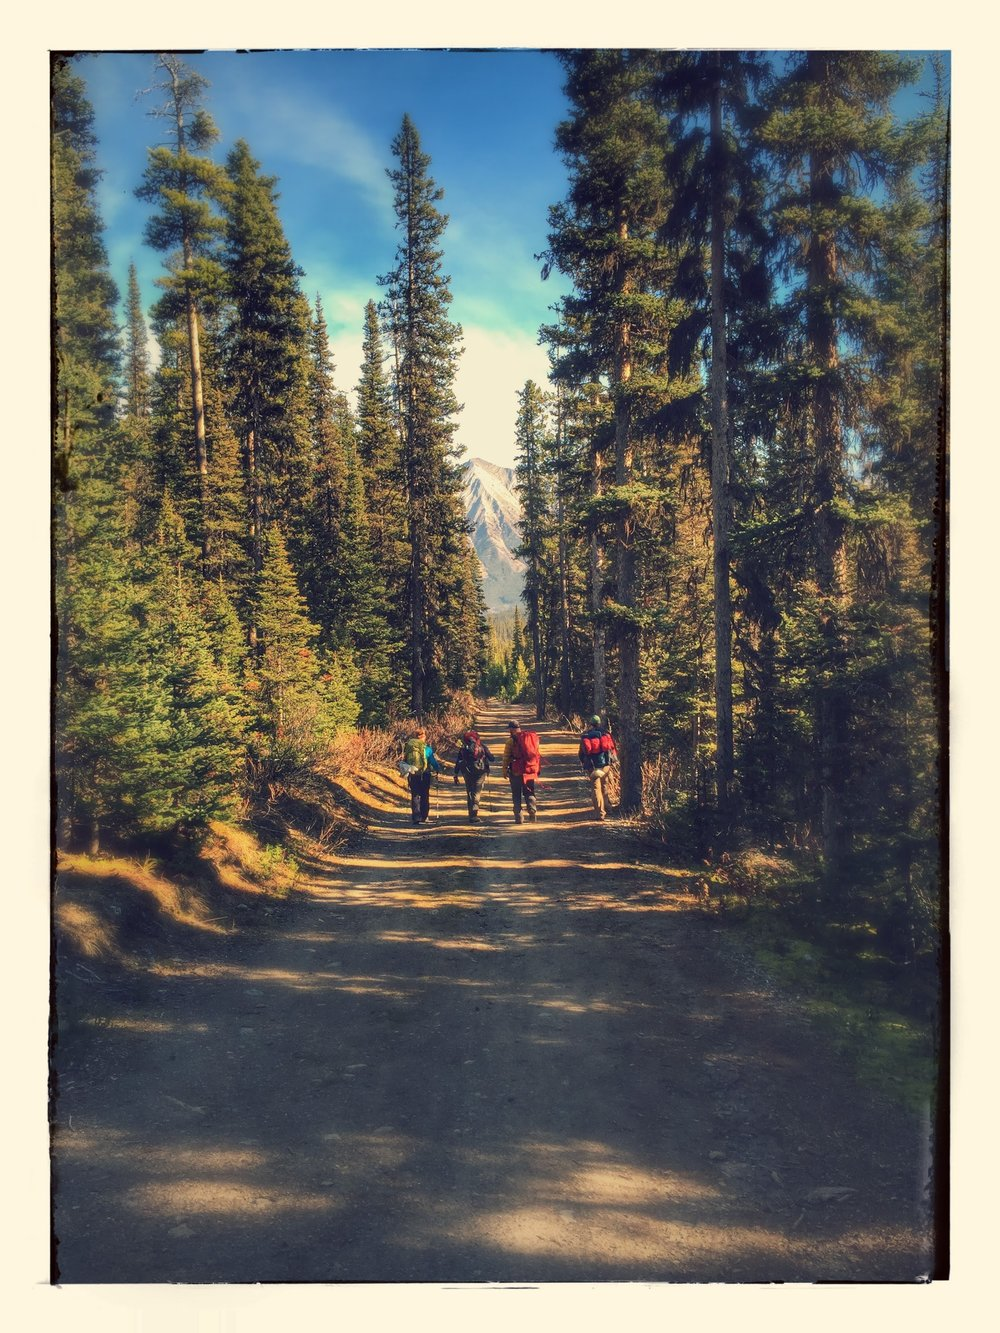 Backpacking off Spray Lakes Road in the Rockies.